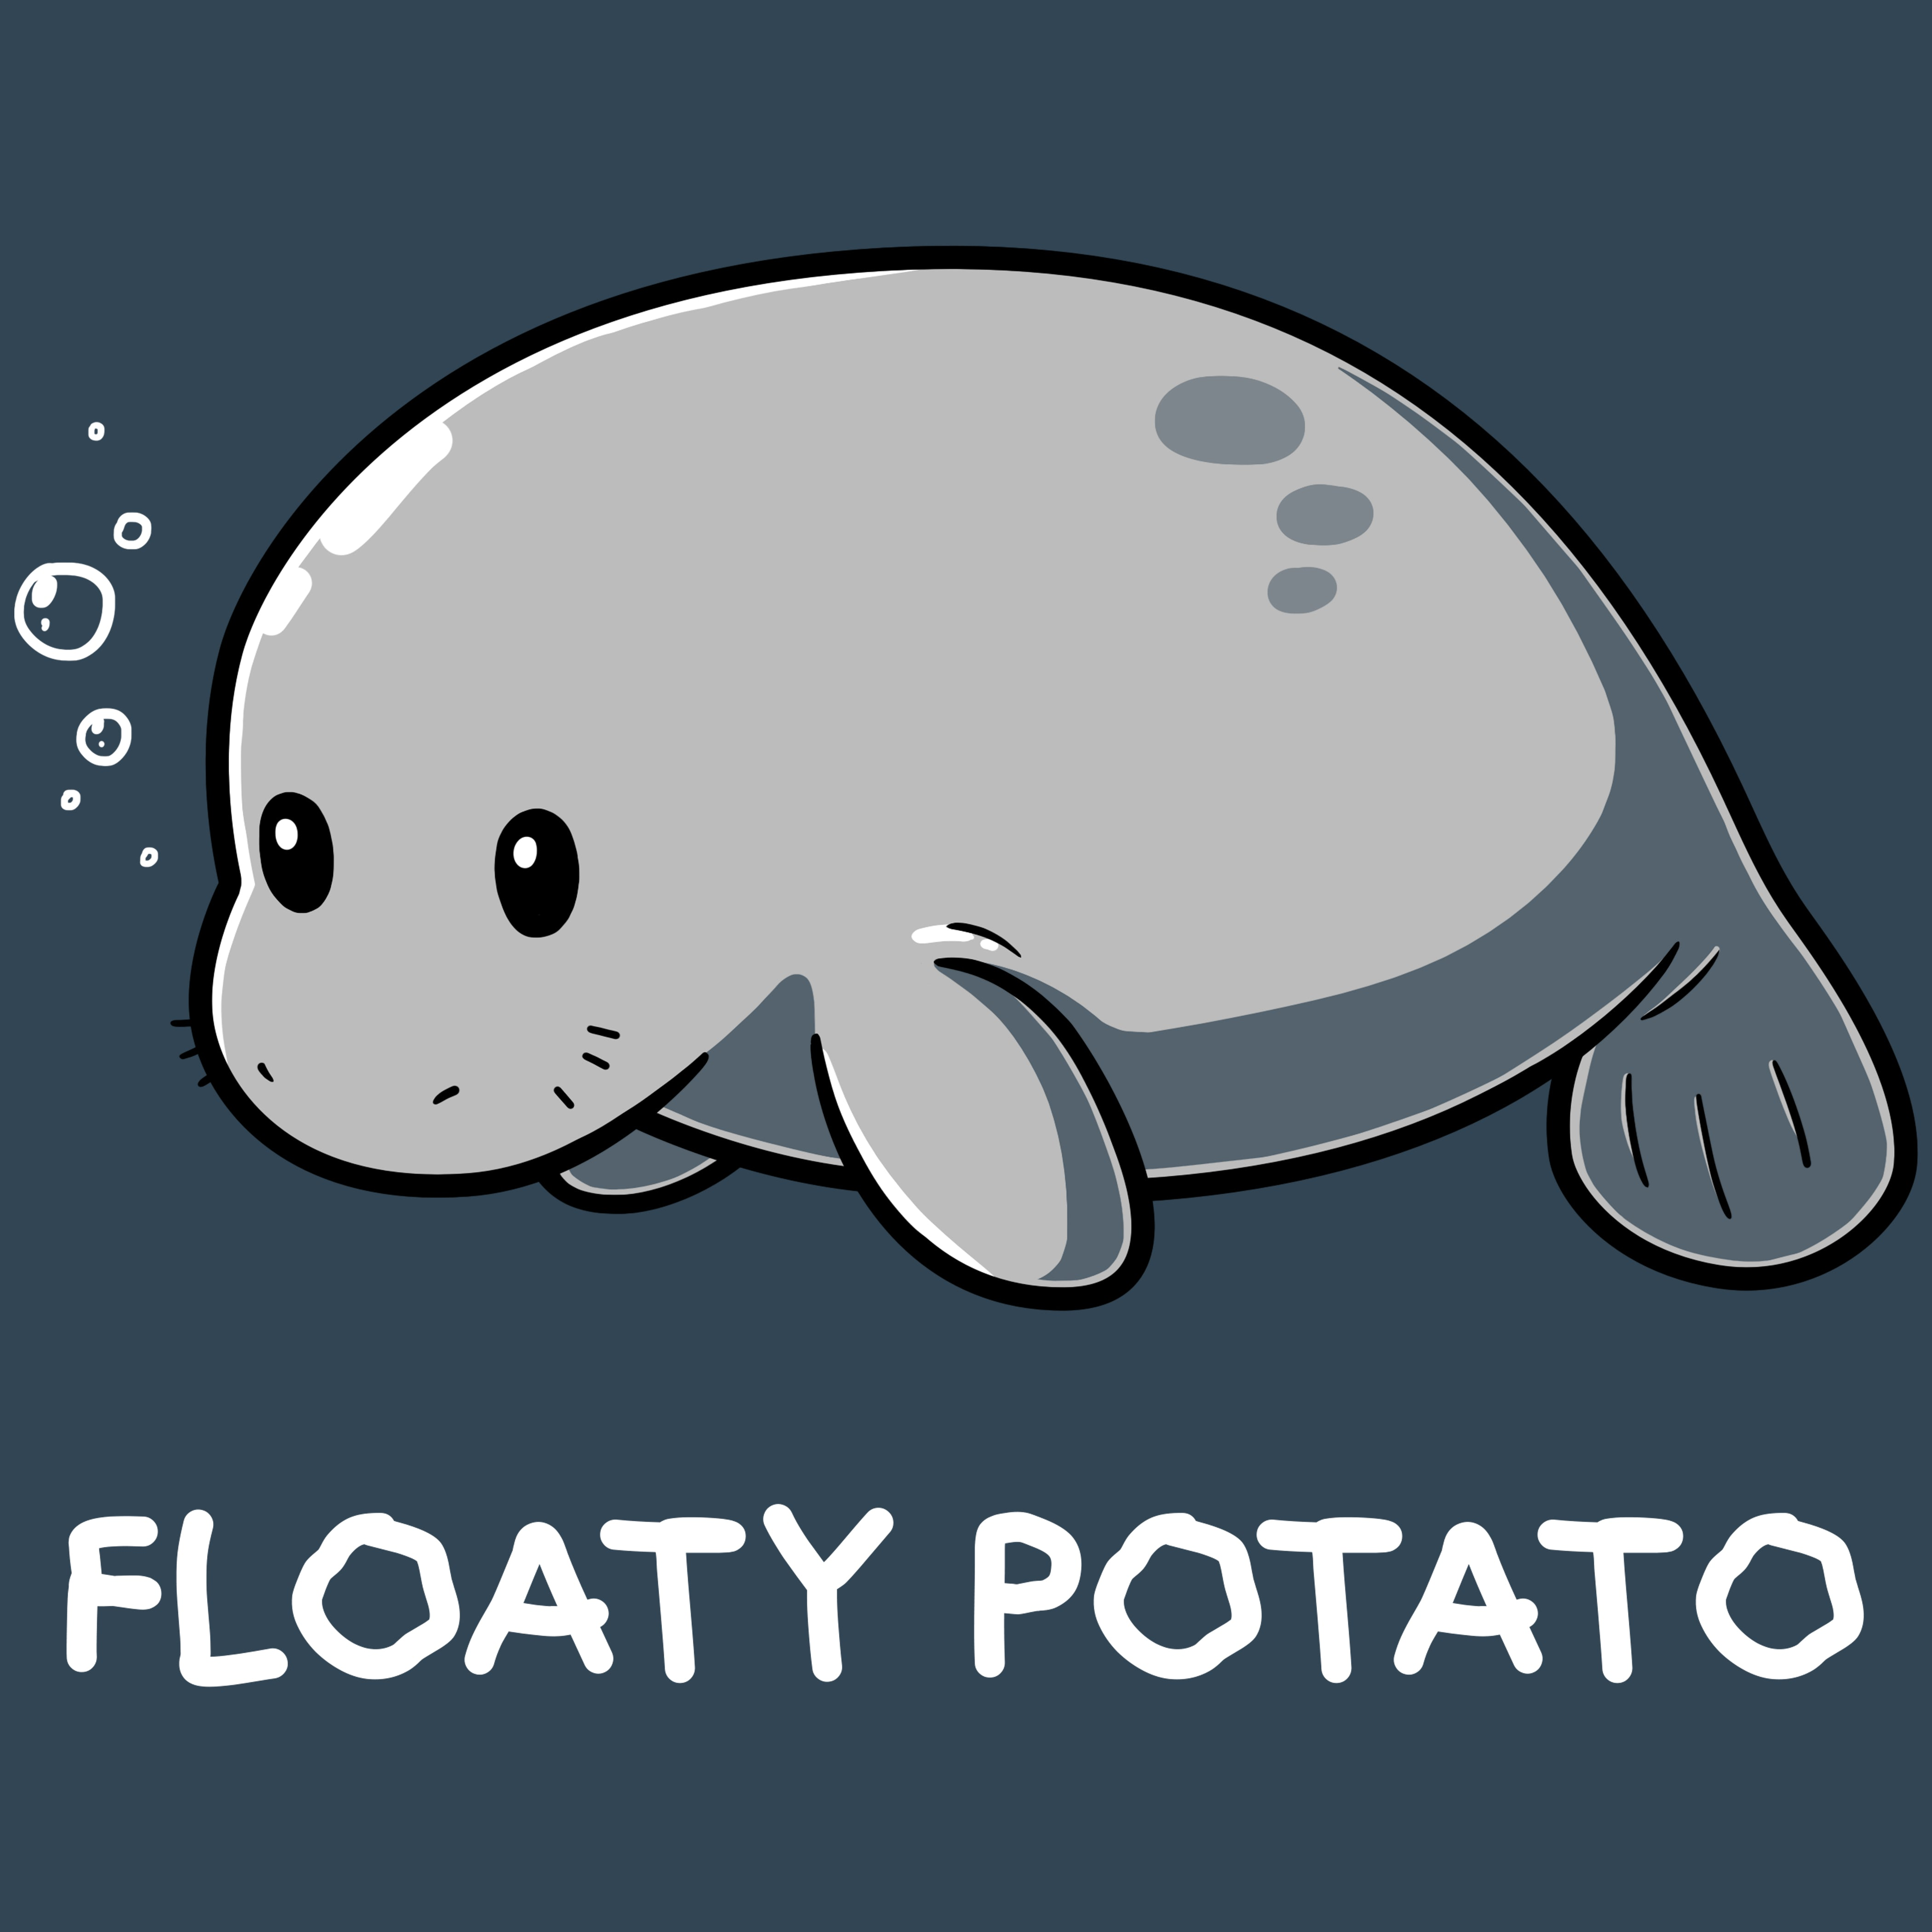 Floaty Potato T-Shirt TeeTurtle